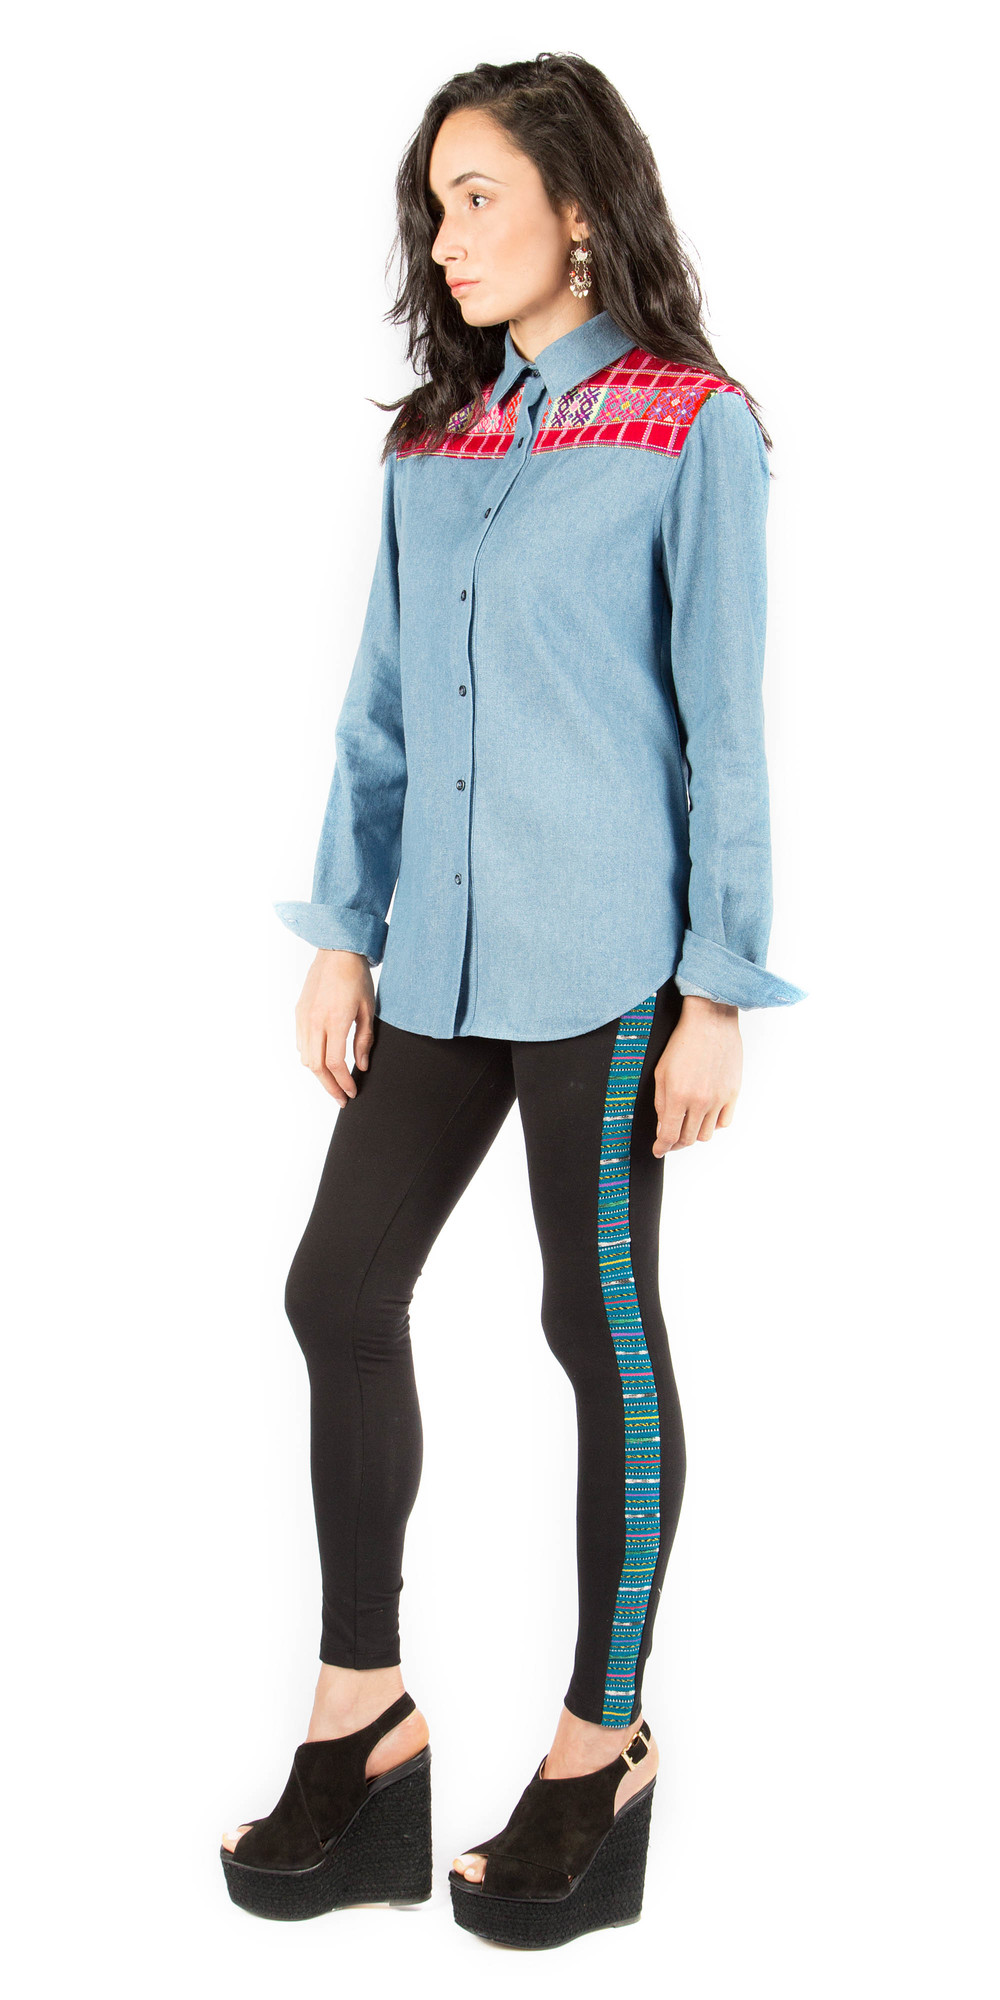 Oeste Yoke Shirt /  Luna Racer Stripe Leggings